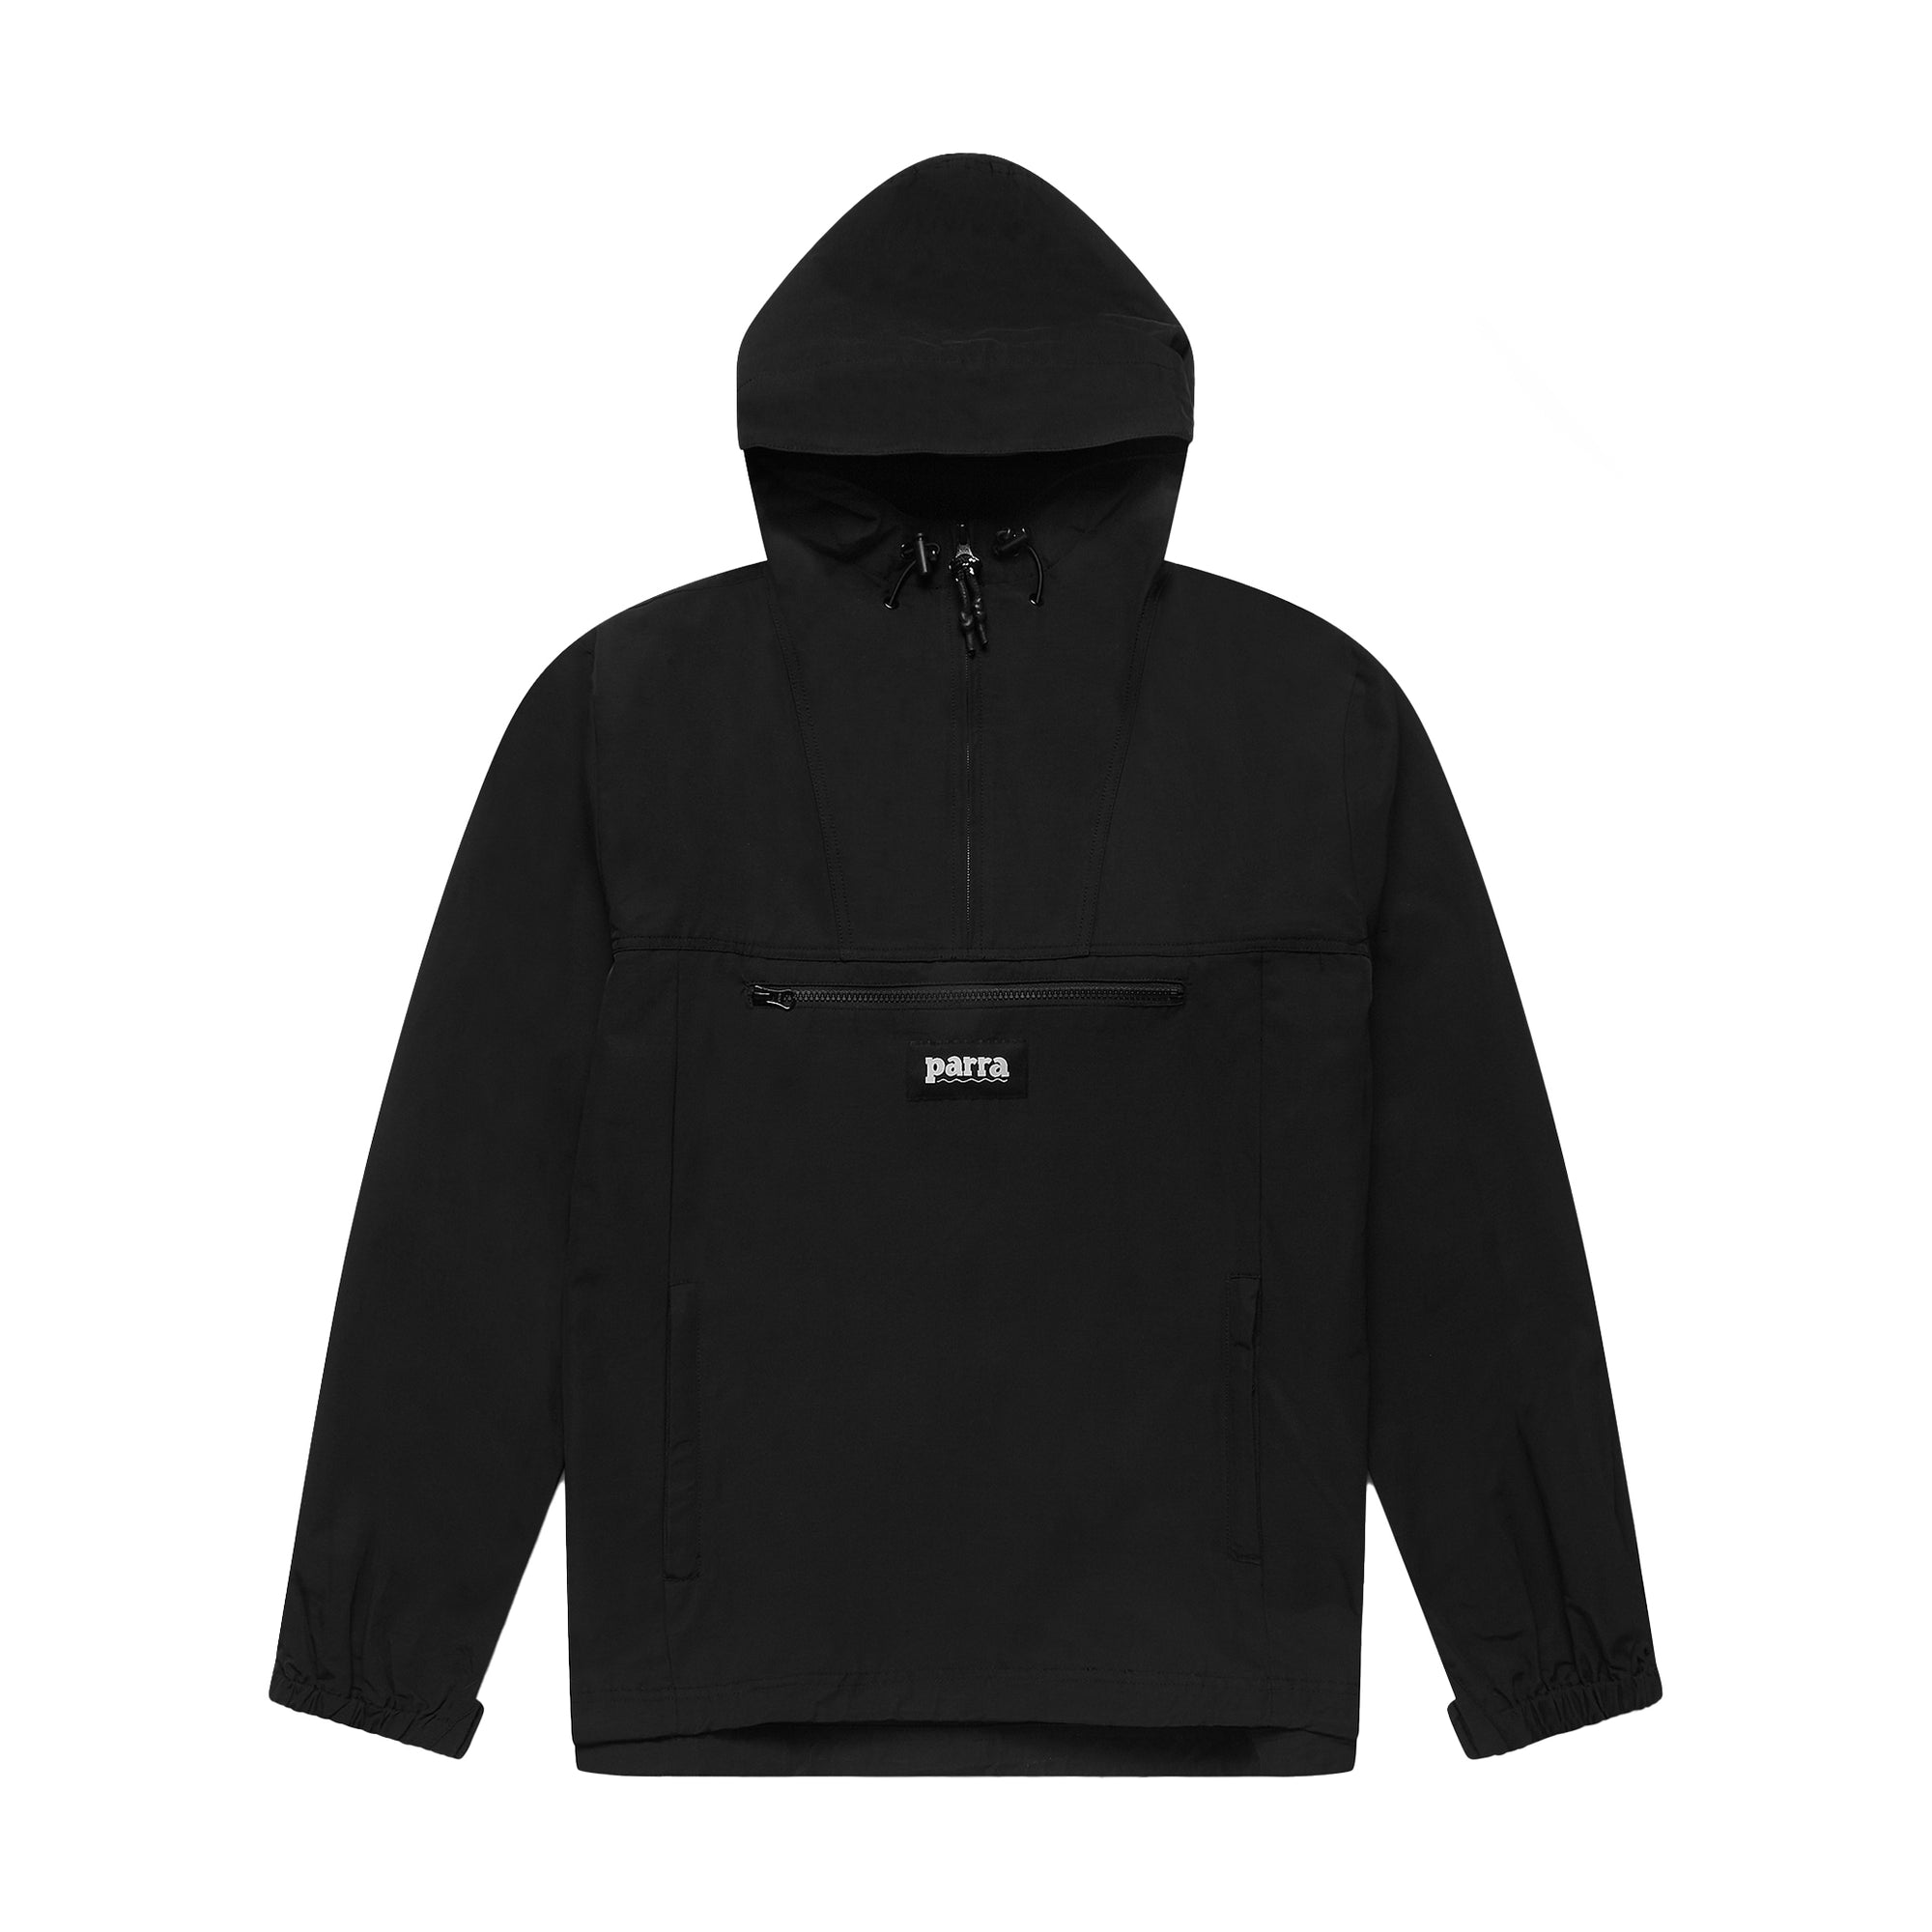 Parra No Water Windbreaker: Black - The Union Project